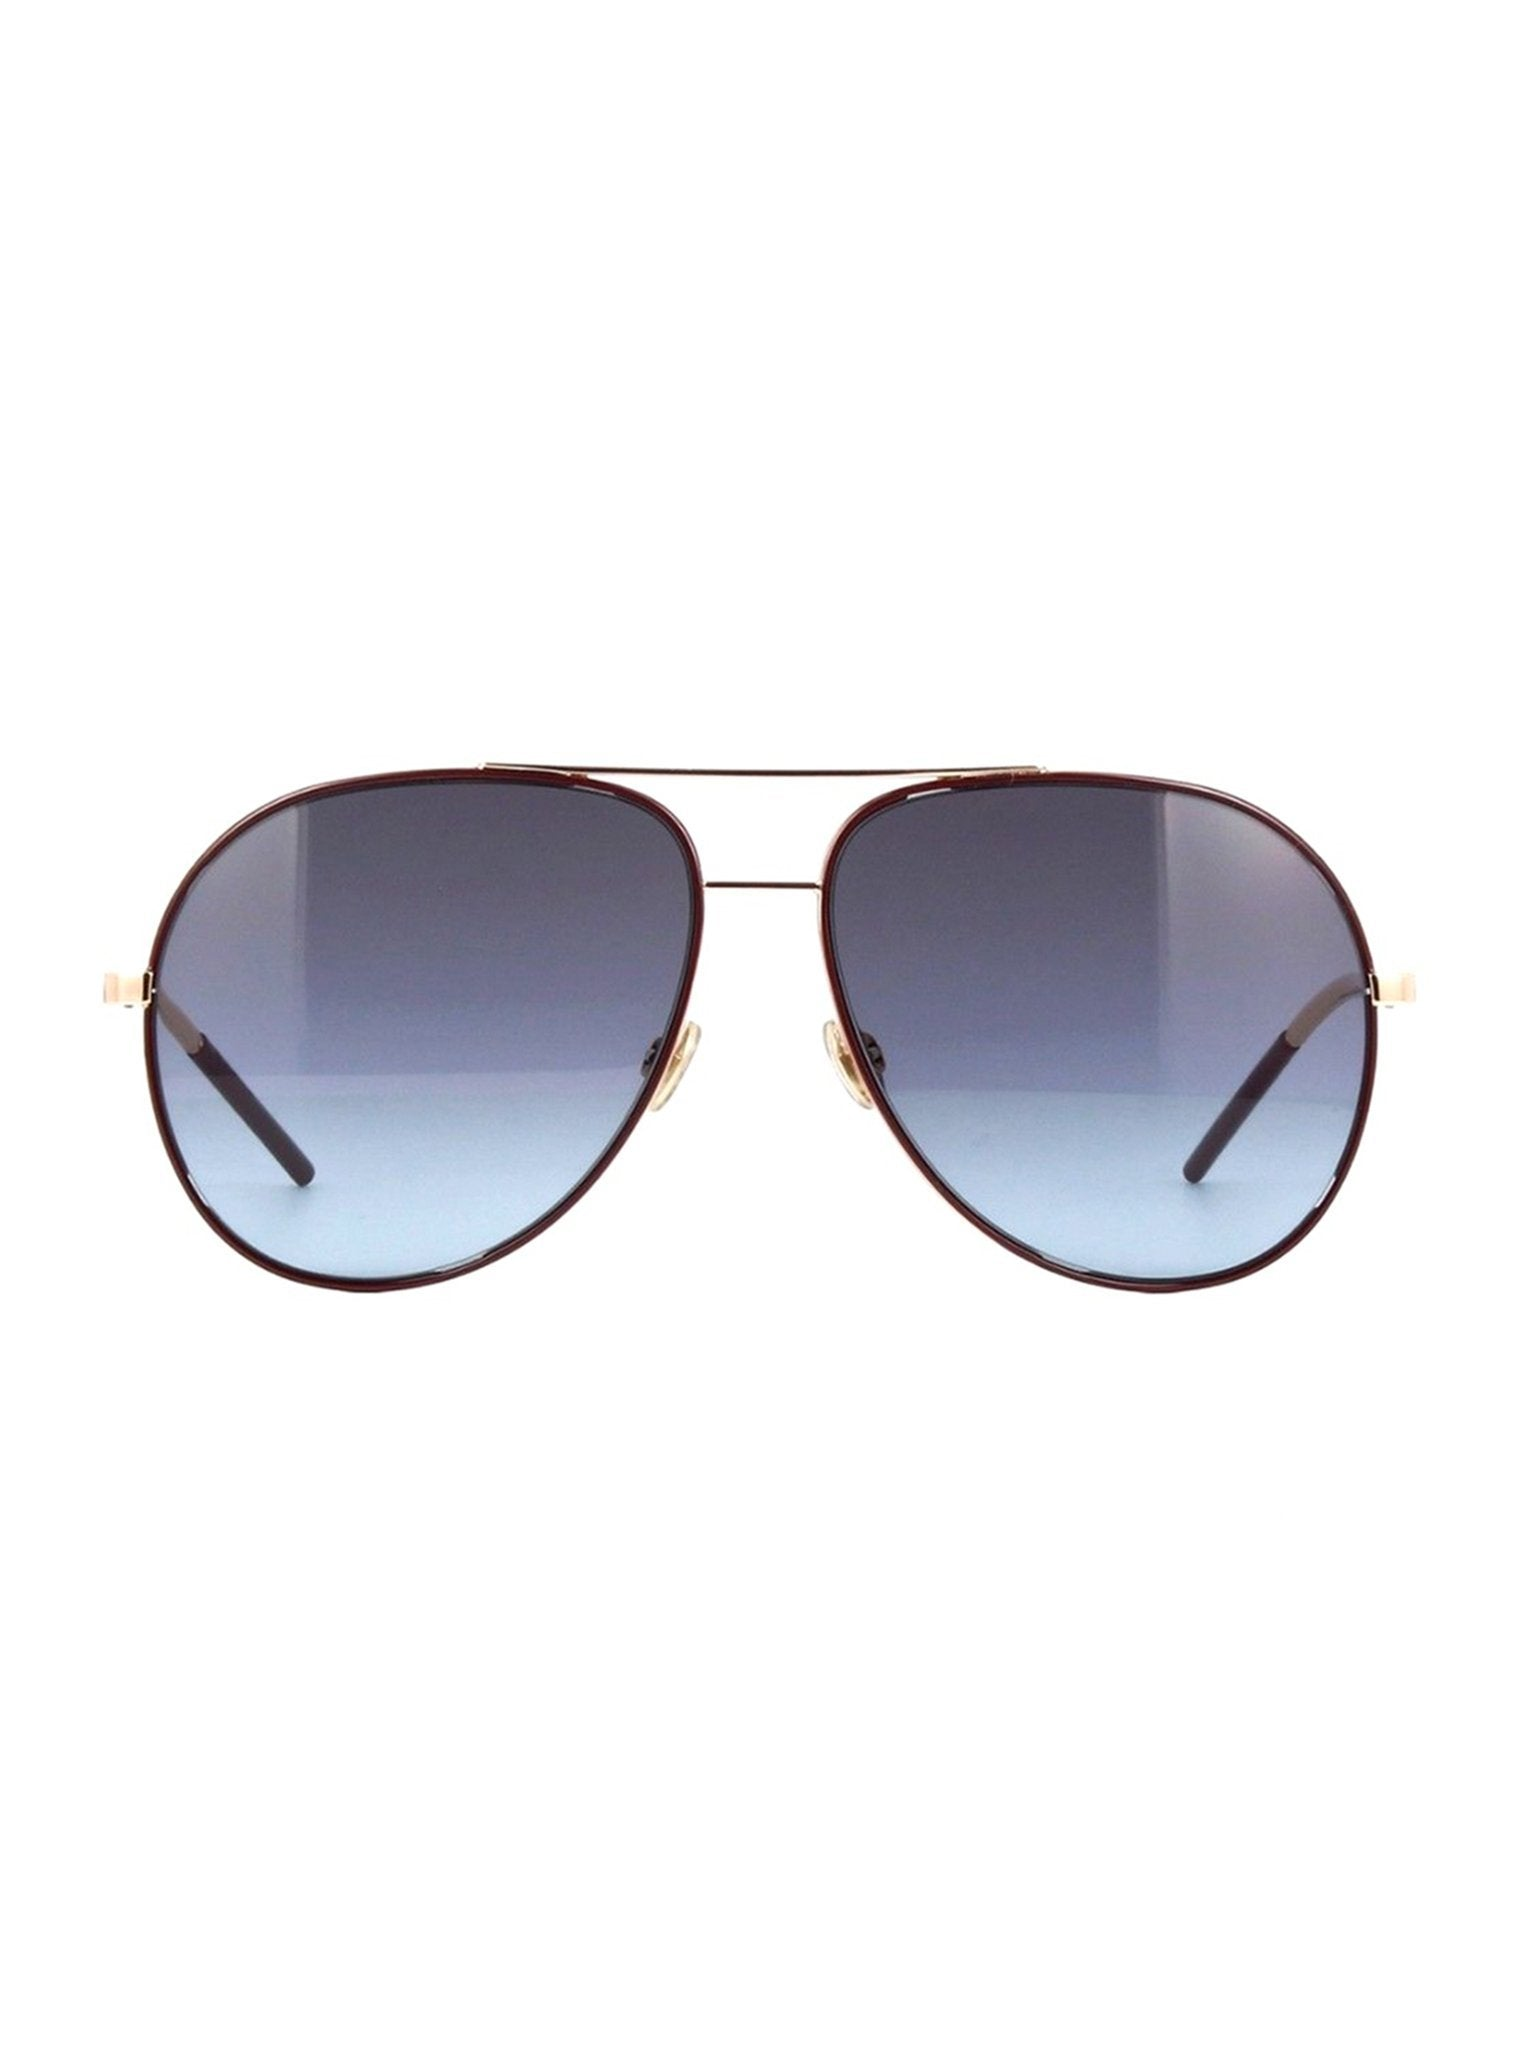 bdfcfb6494 Dior - Astral Aviator Sunglasses - Burgundy Gold   Gray Petrol Gradient -  ForwardModa